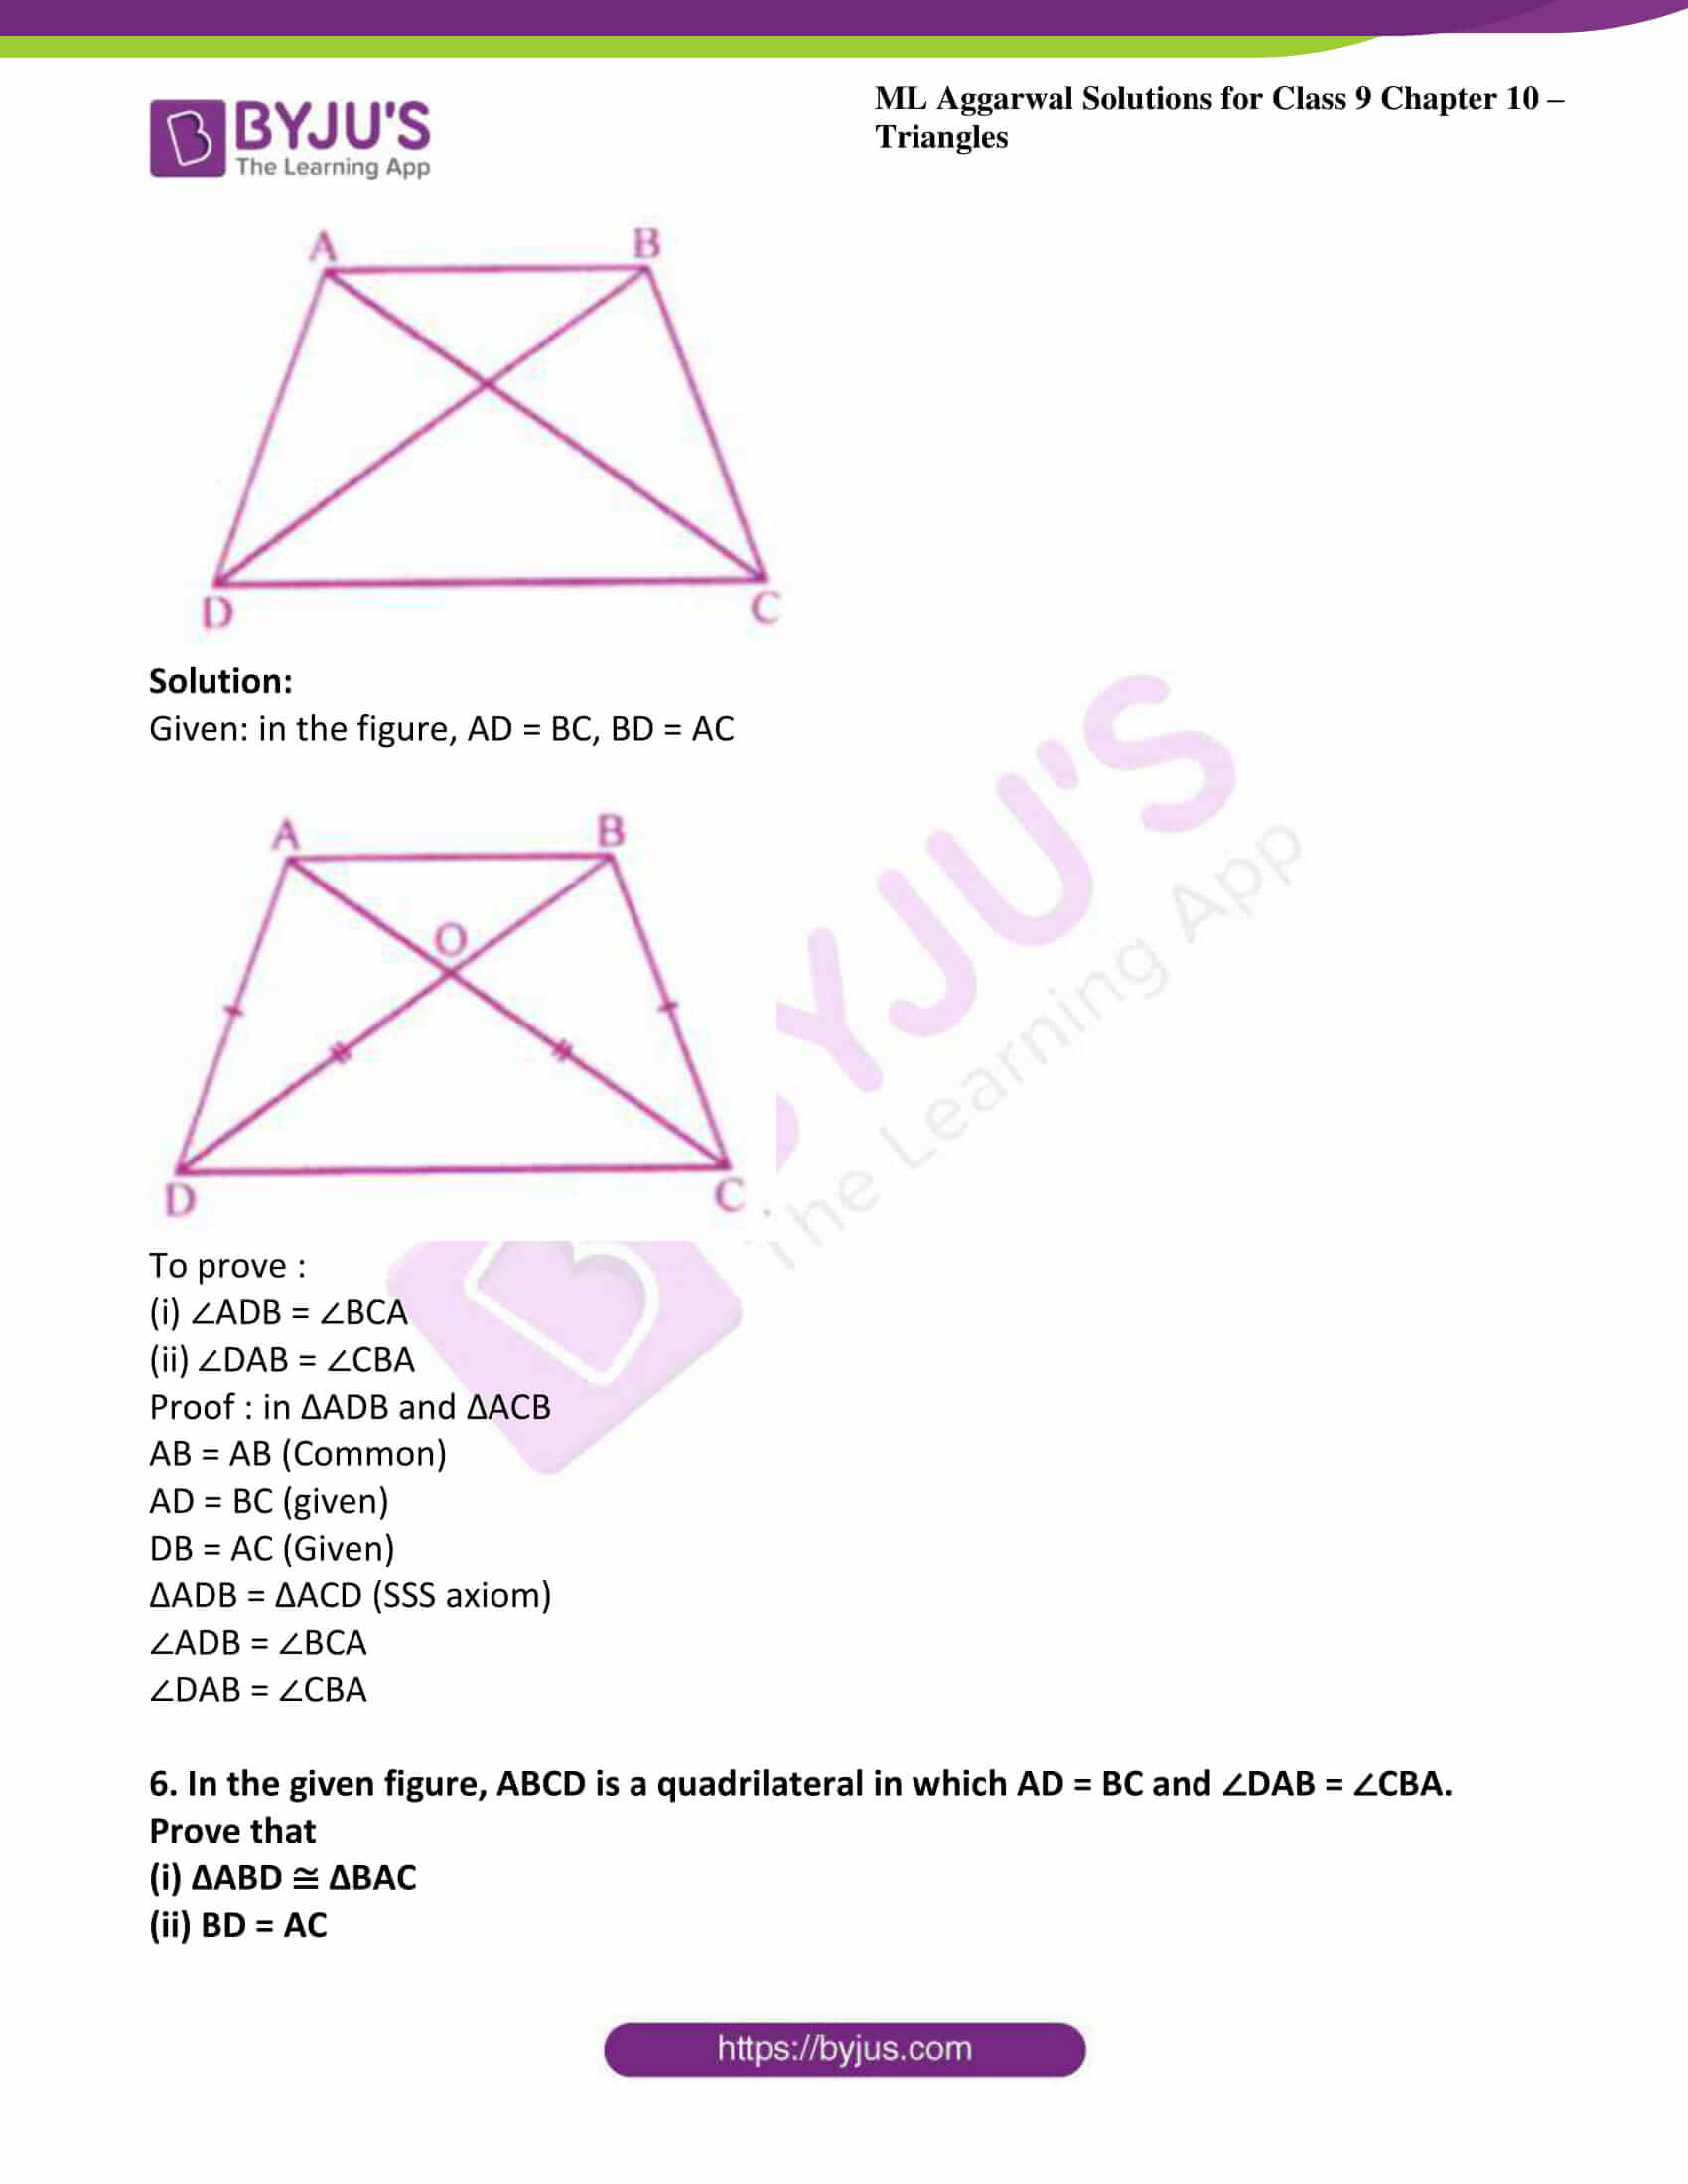 ml aggarwal solutions for class 9 maths chapter 10 04